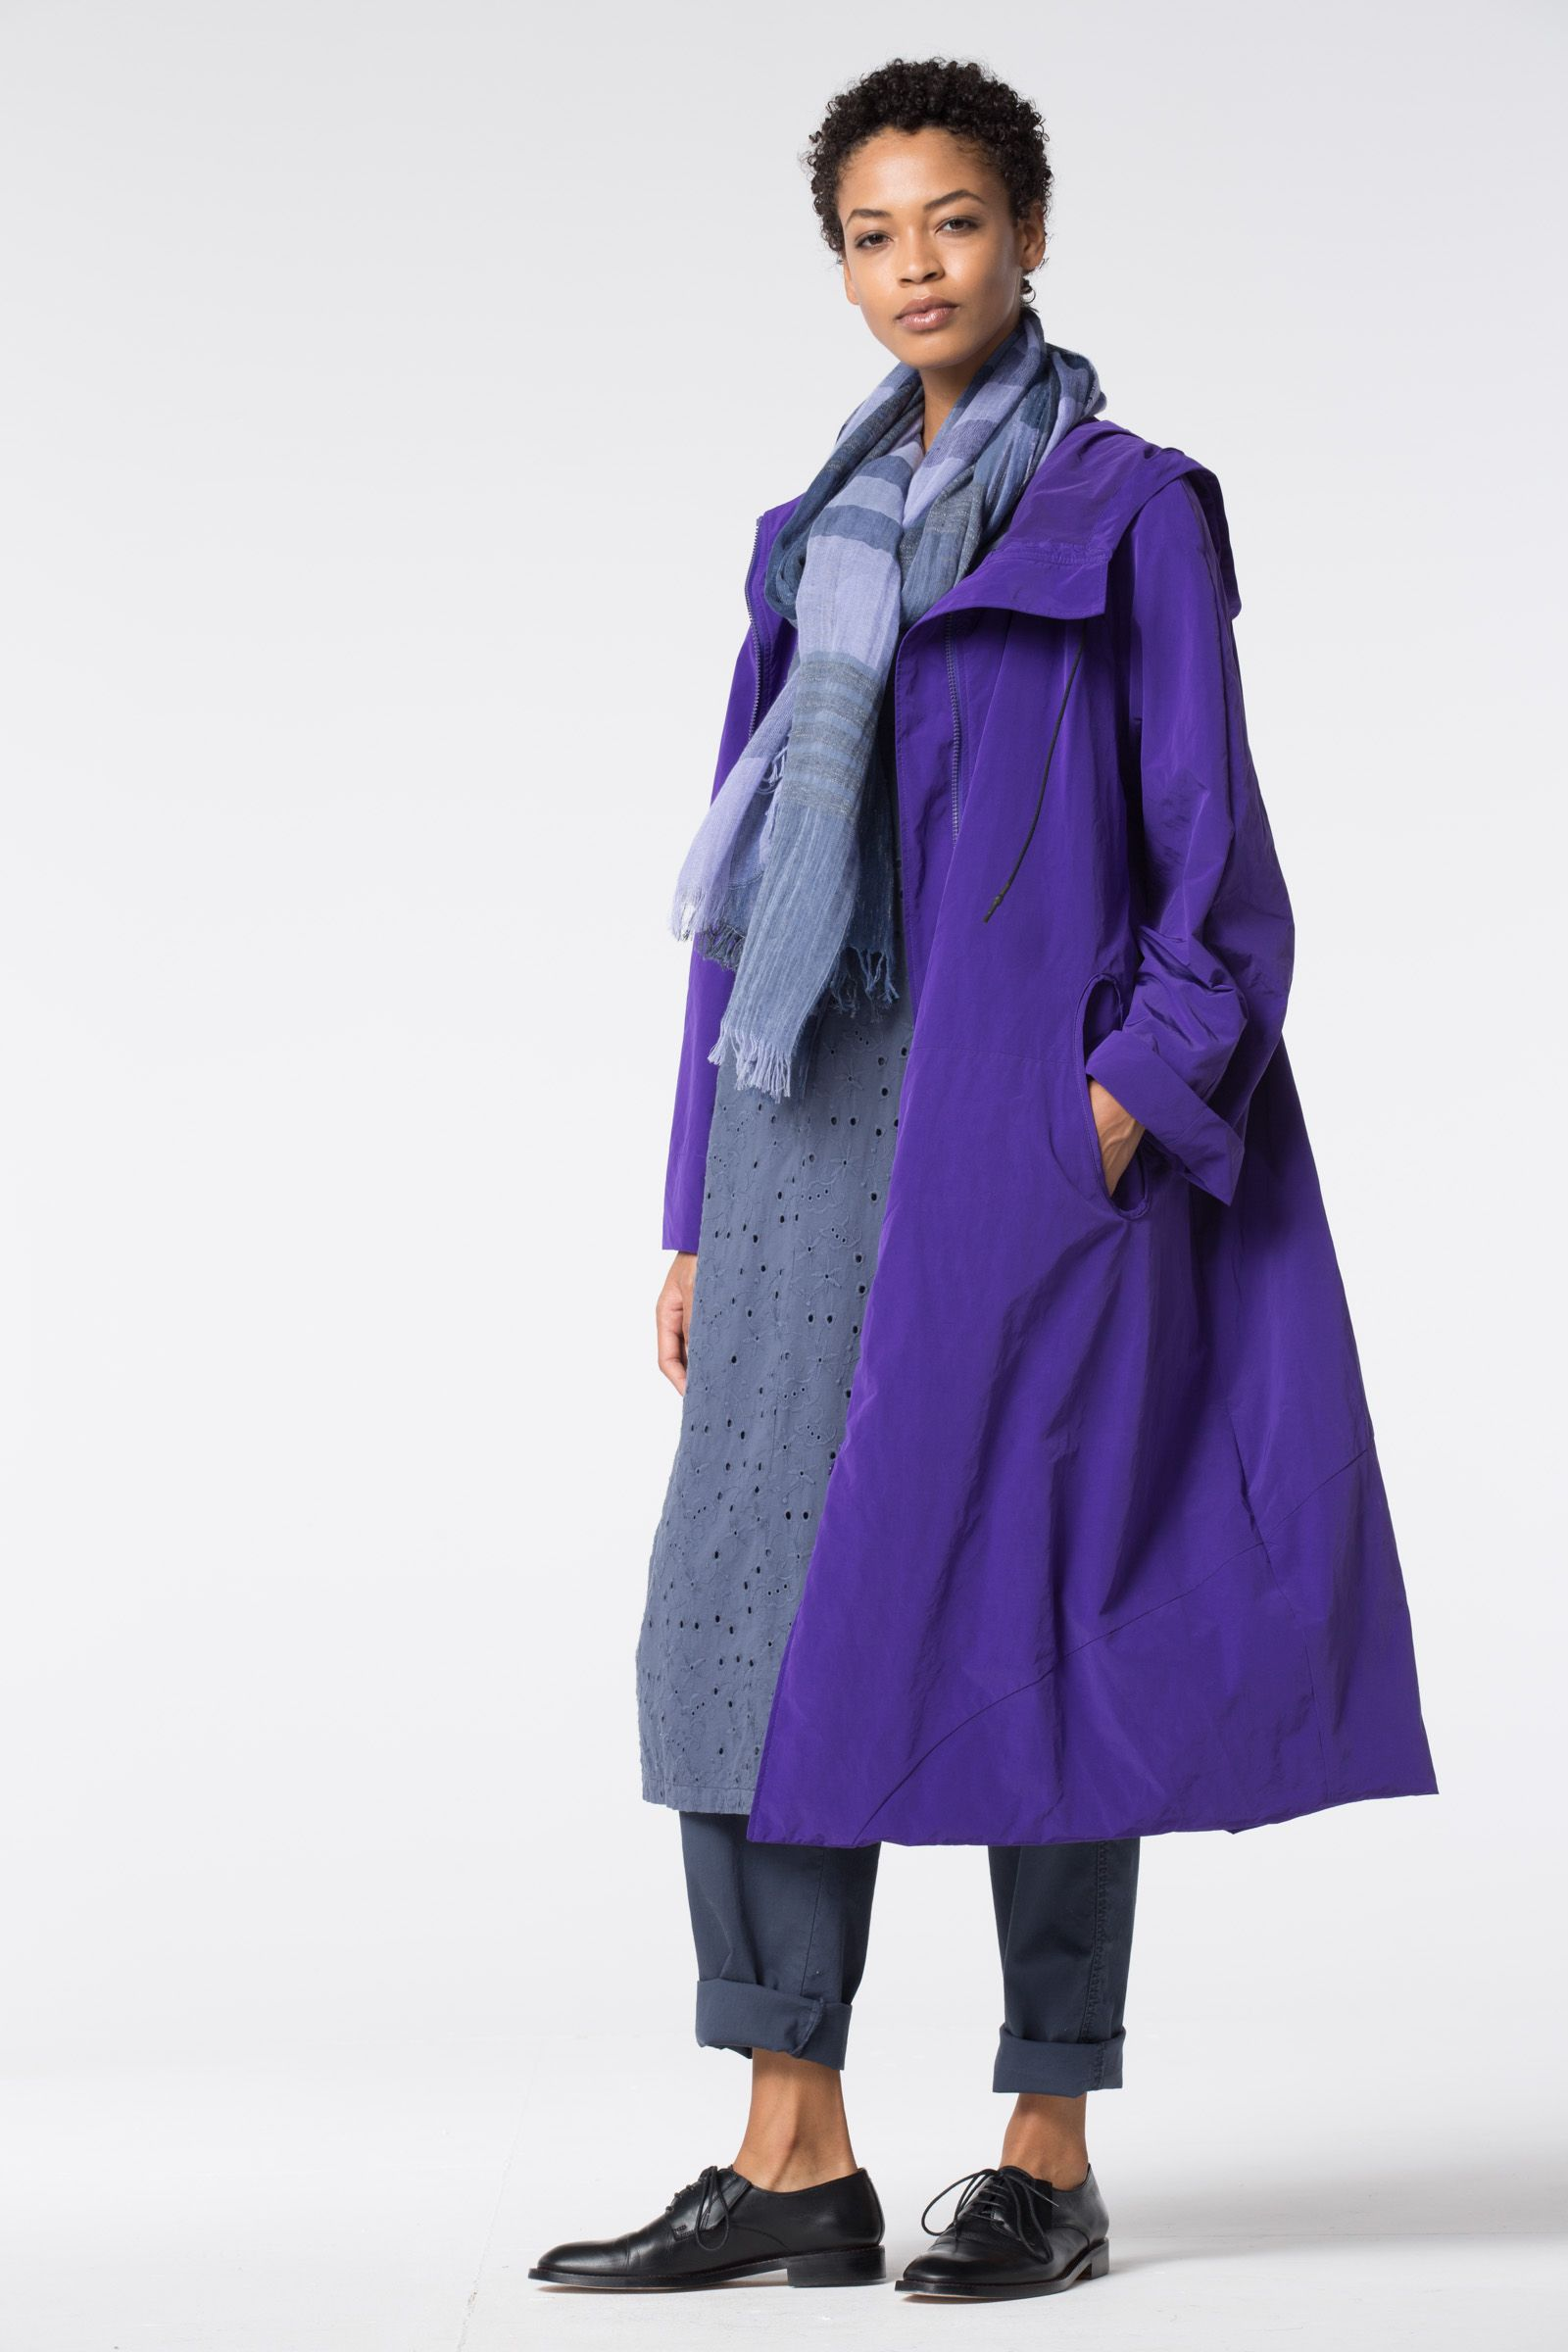 b6d275ab1 OSKA® Coat Segenta in color Iris is gorgeous, light-weight, and ...